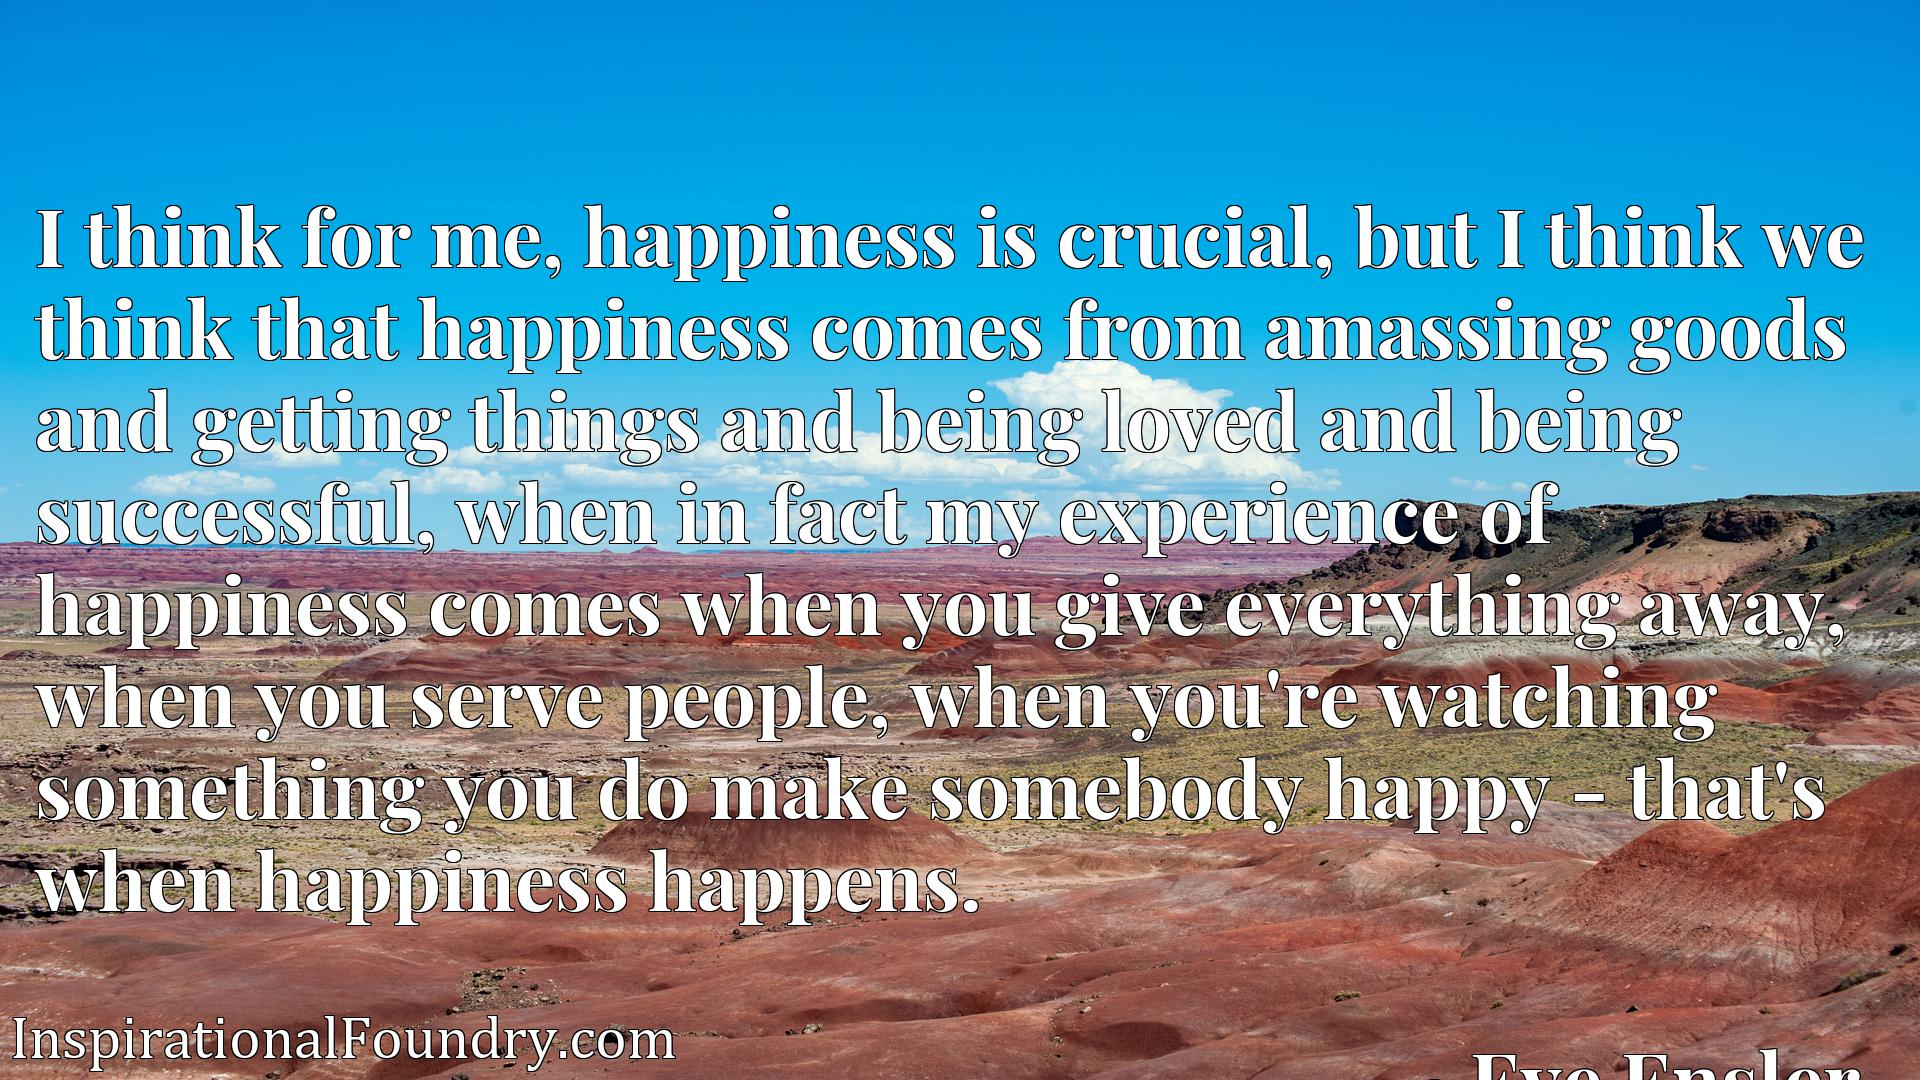 Quote Picture :I think for me, happiness is crucial, but I think we think that happiness comes from amassing goods and getting things and being loved and being successful, when in fact my experience of happiness comes when you give everything away, when you serve people, when you're watching something you do make somebody happy - that's when happiness happens.